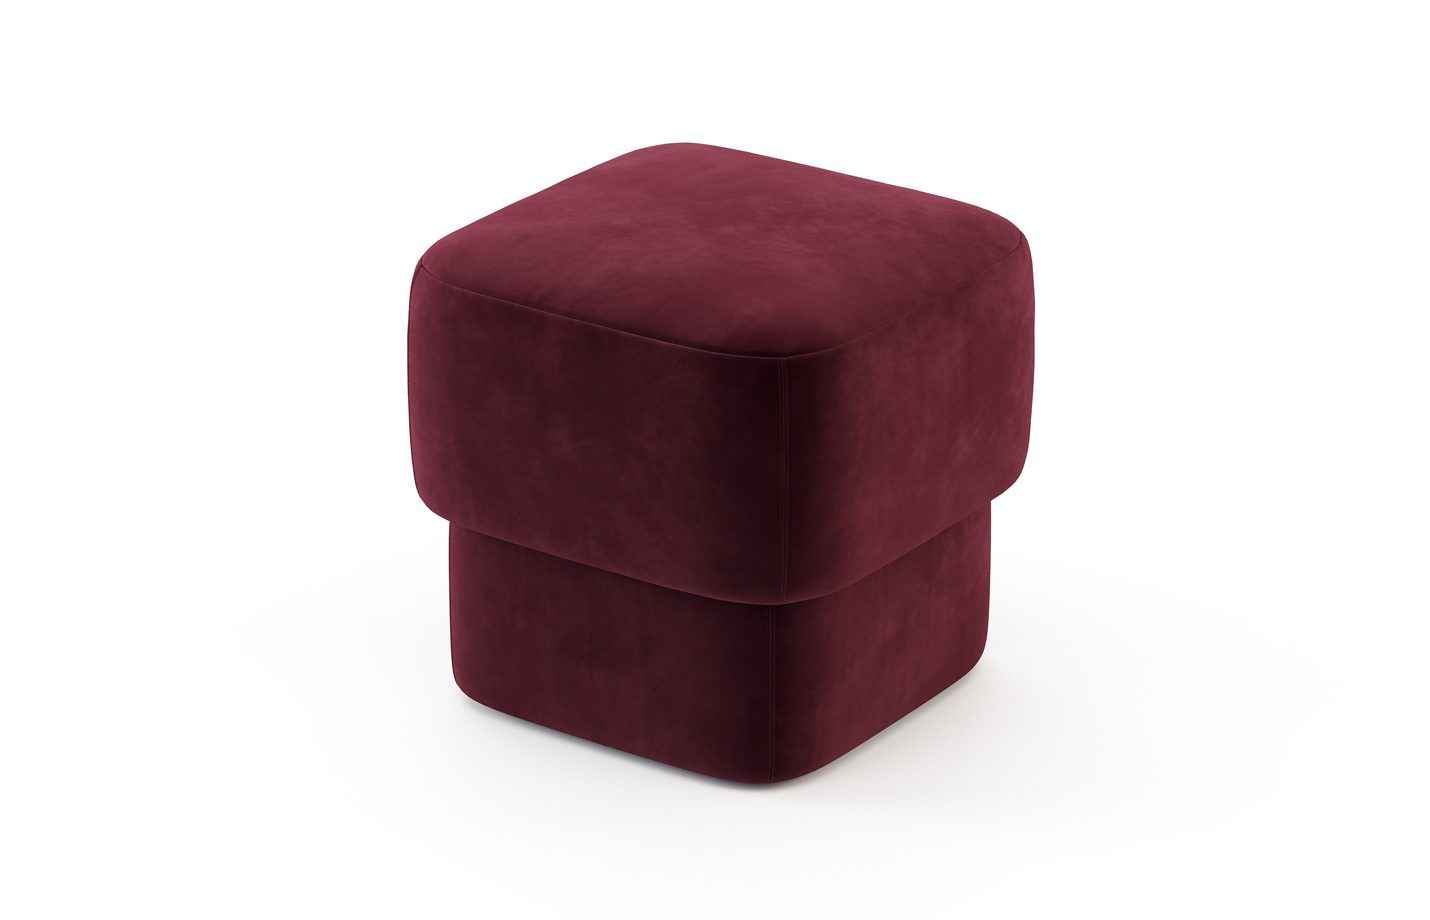 Tilly-Pouf-Small-by-fabiia-furniture-signature-3-S